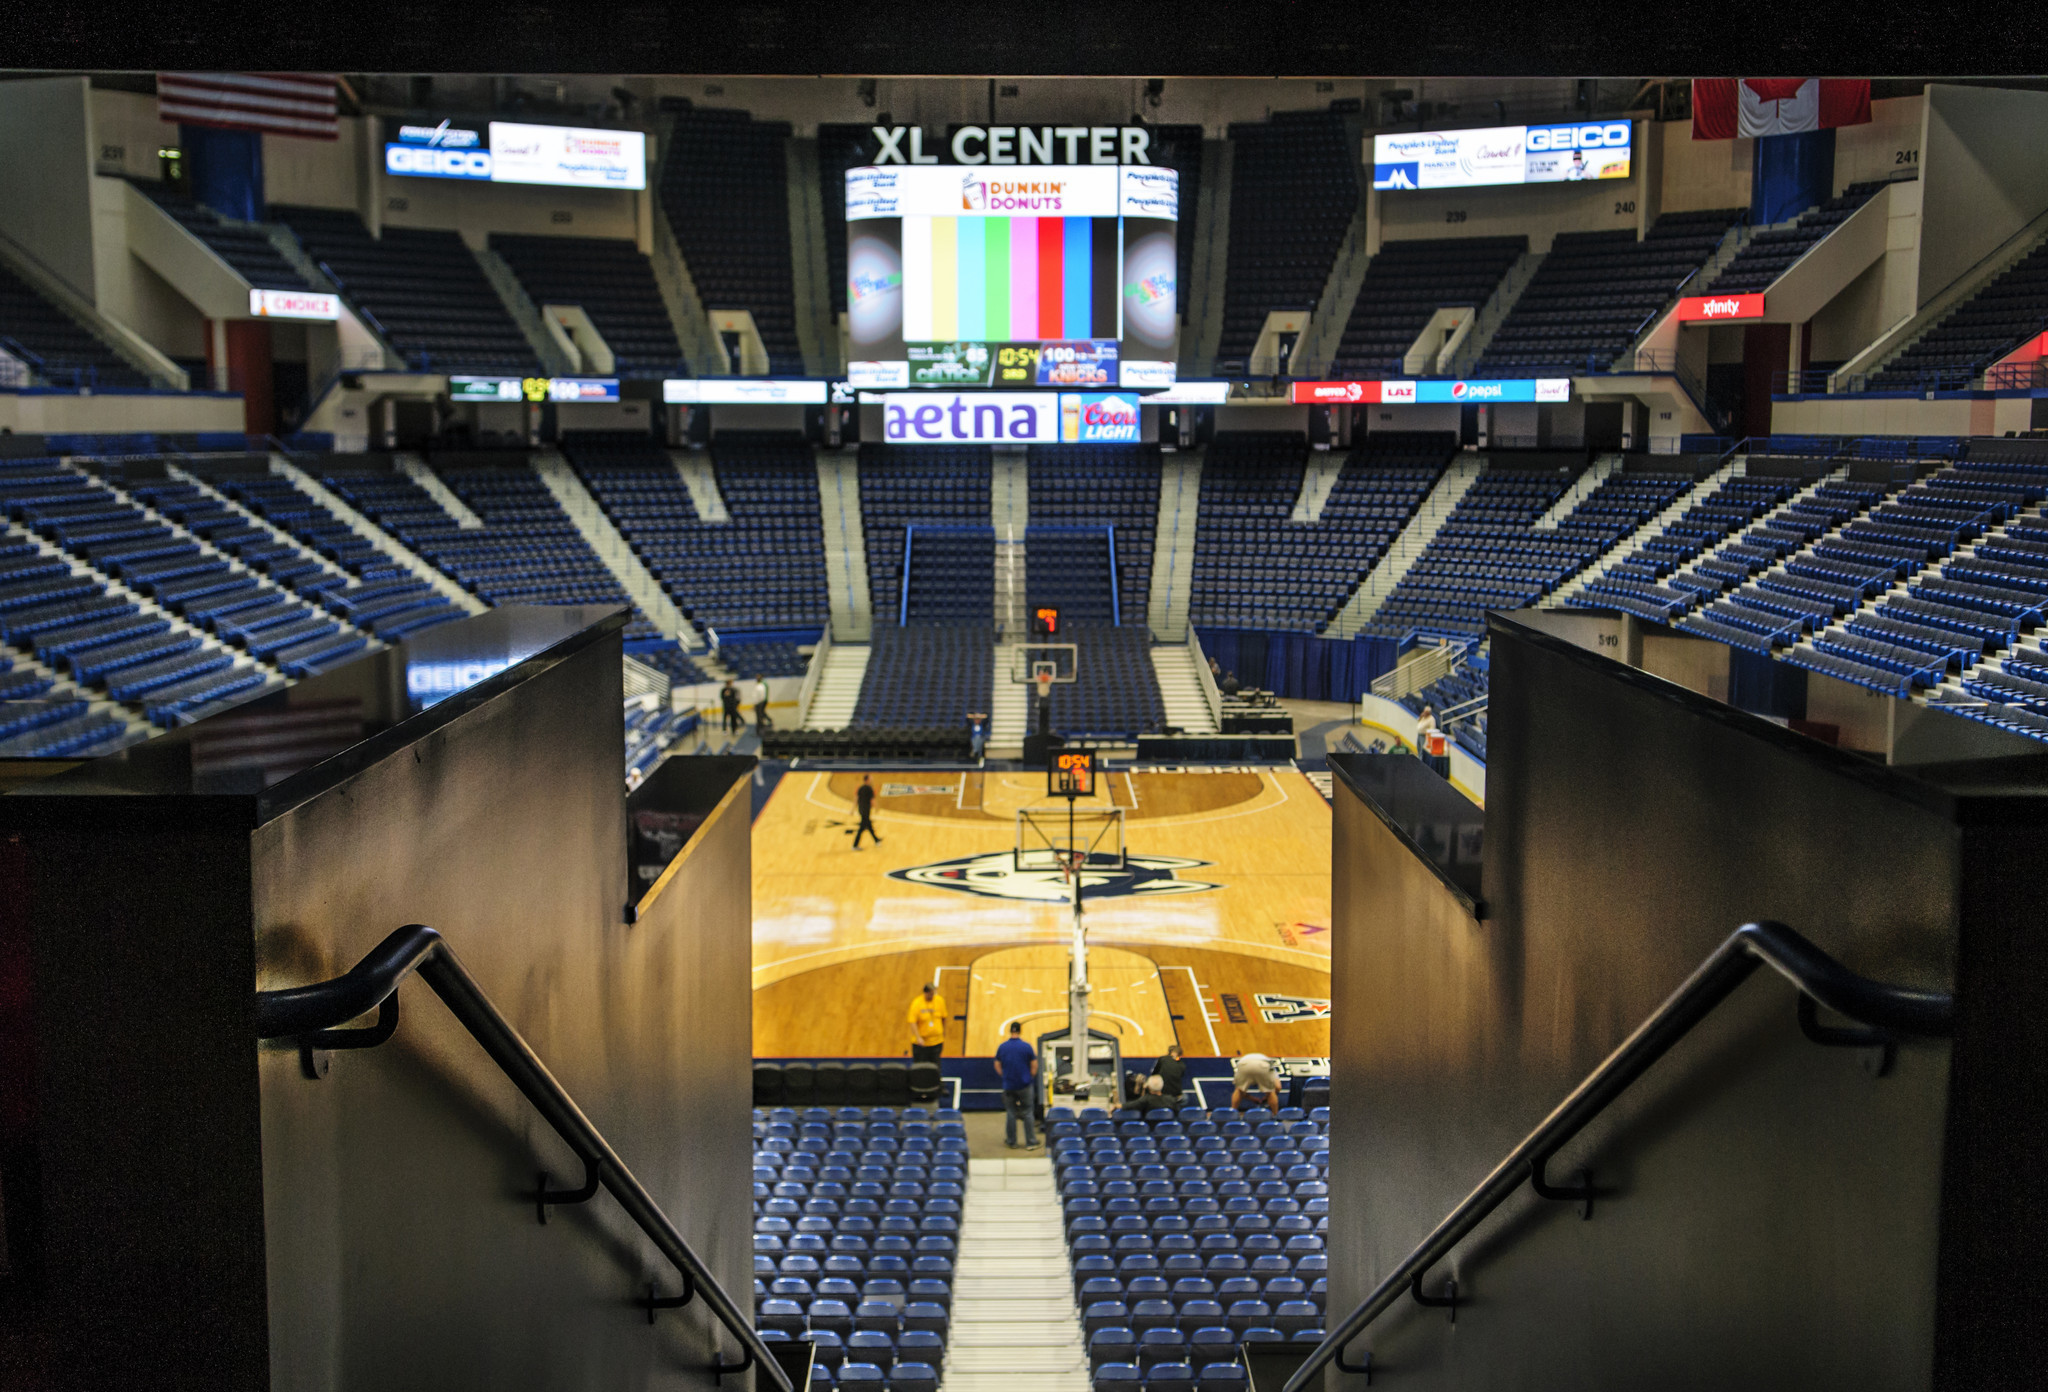 Xl center renovation updates hartford wolf pack - Xl Center Renovations Draw Support But Money For Work Still A Question Hartford Courant